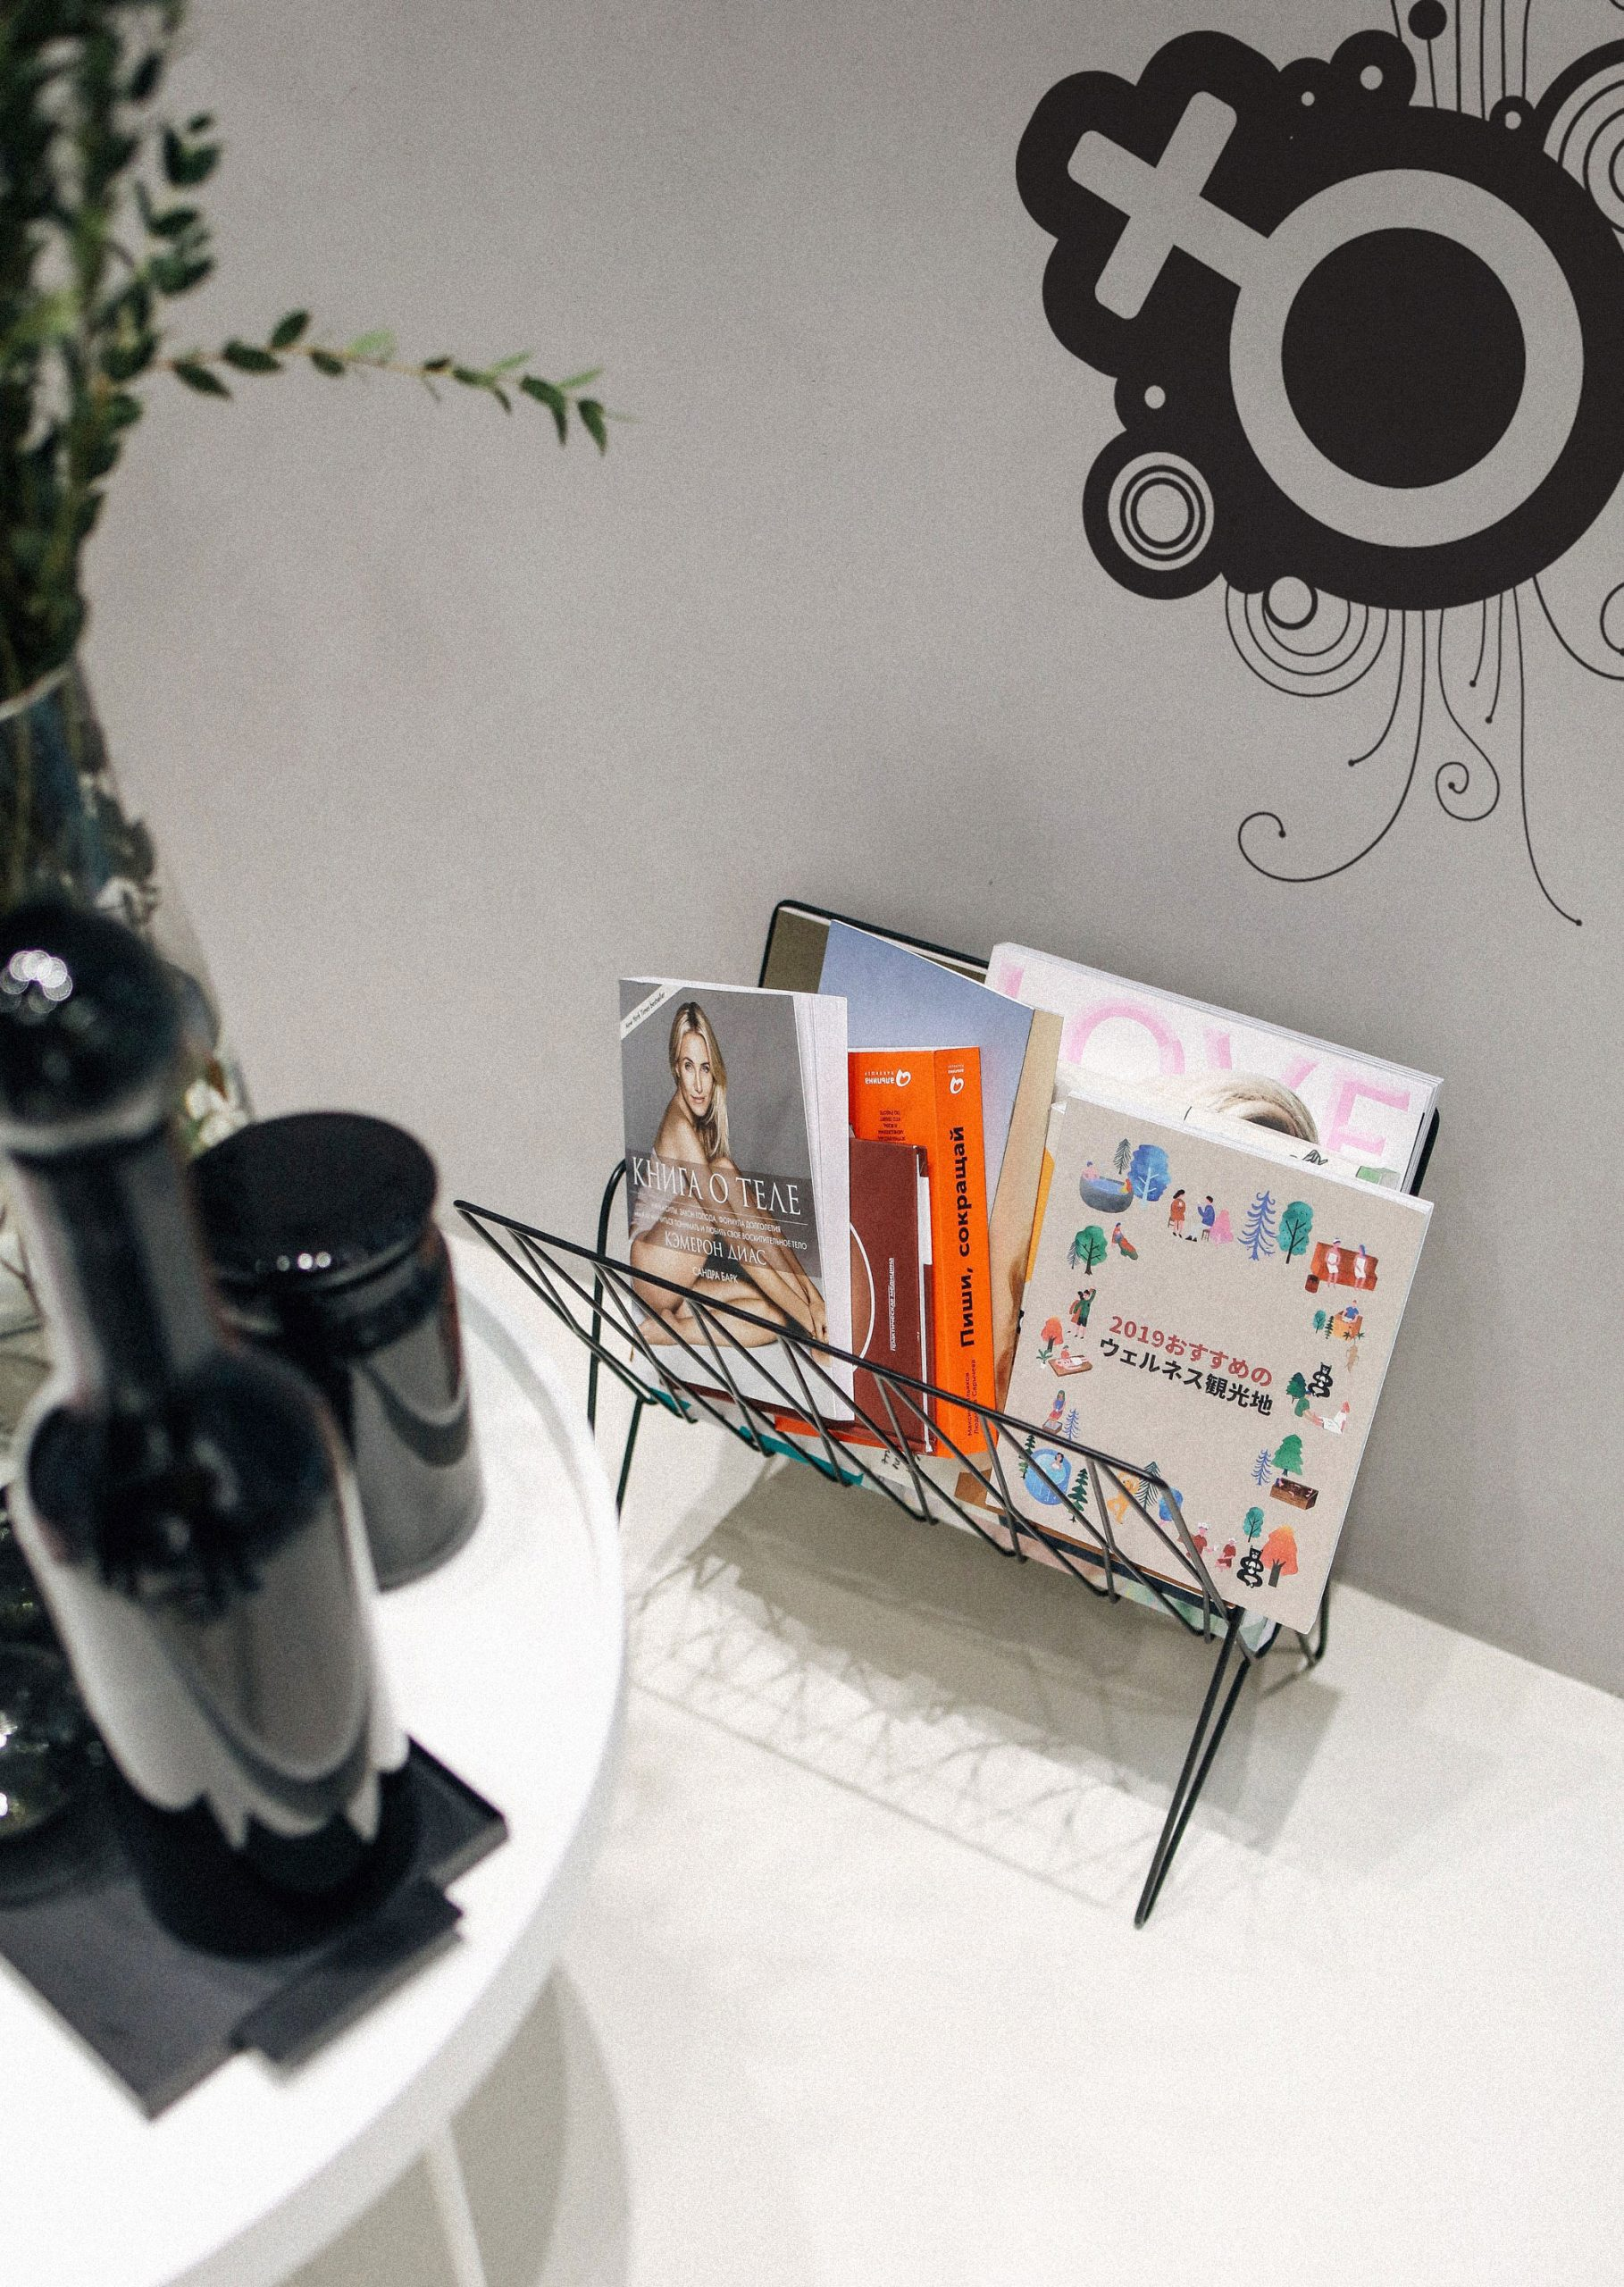 Magazines place - visual identity, graphic system by Color.zone agency for the image! hair salons.